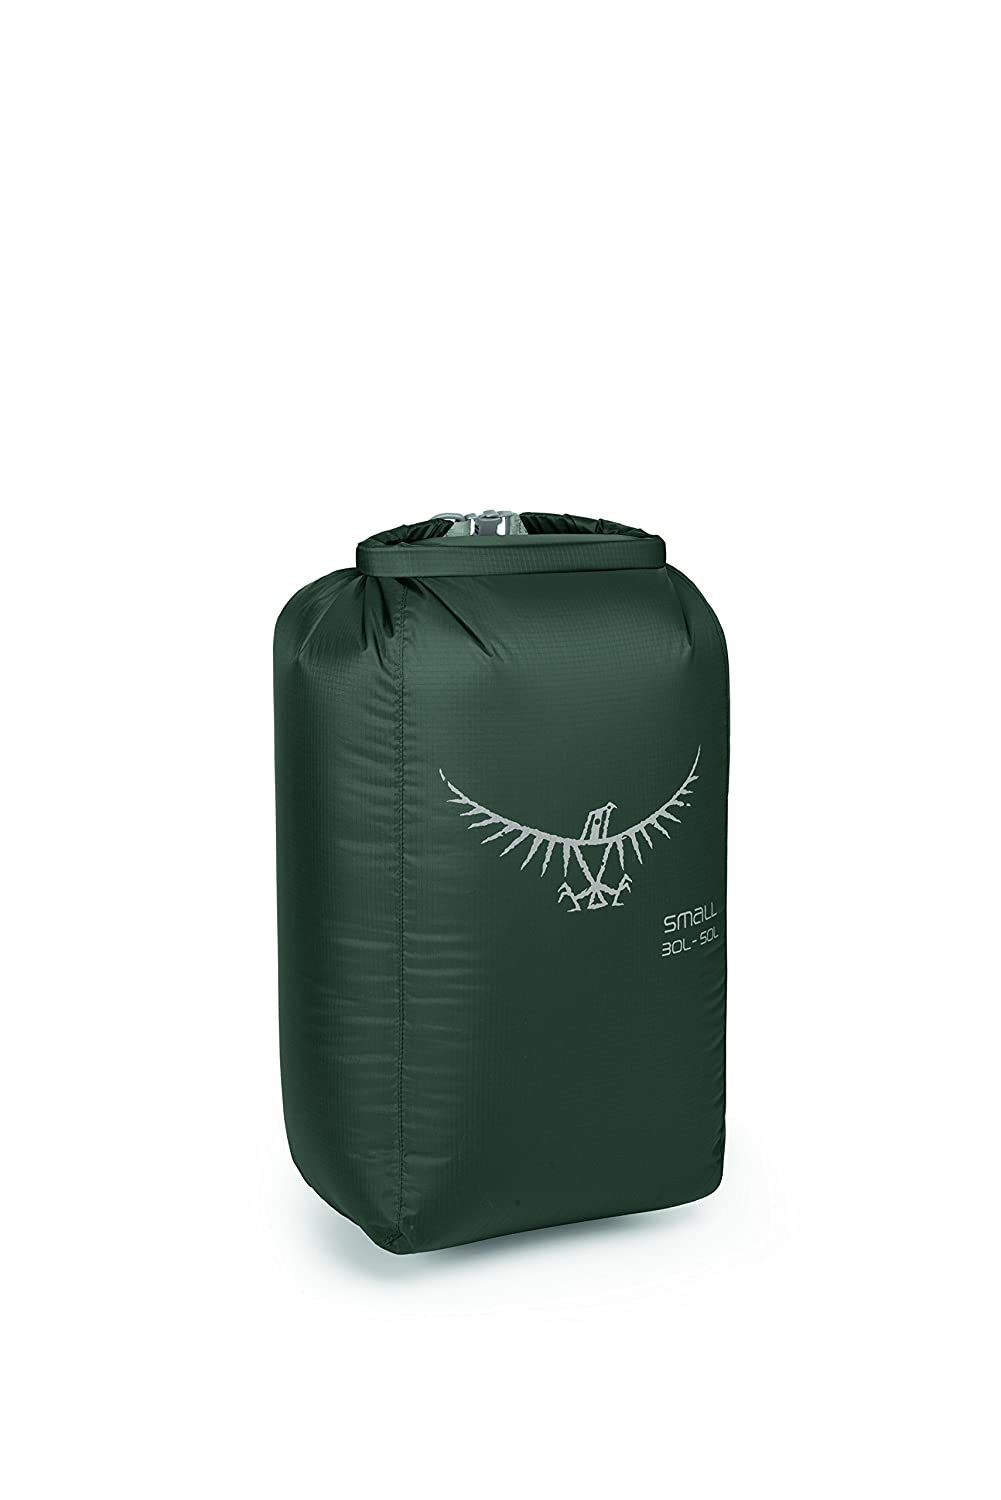 Osprey Ultralight Pack Liner S Unique Customer Zone s.r.o. 10000608